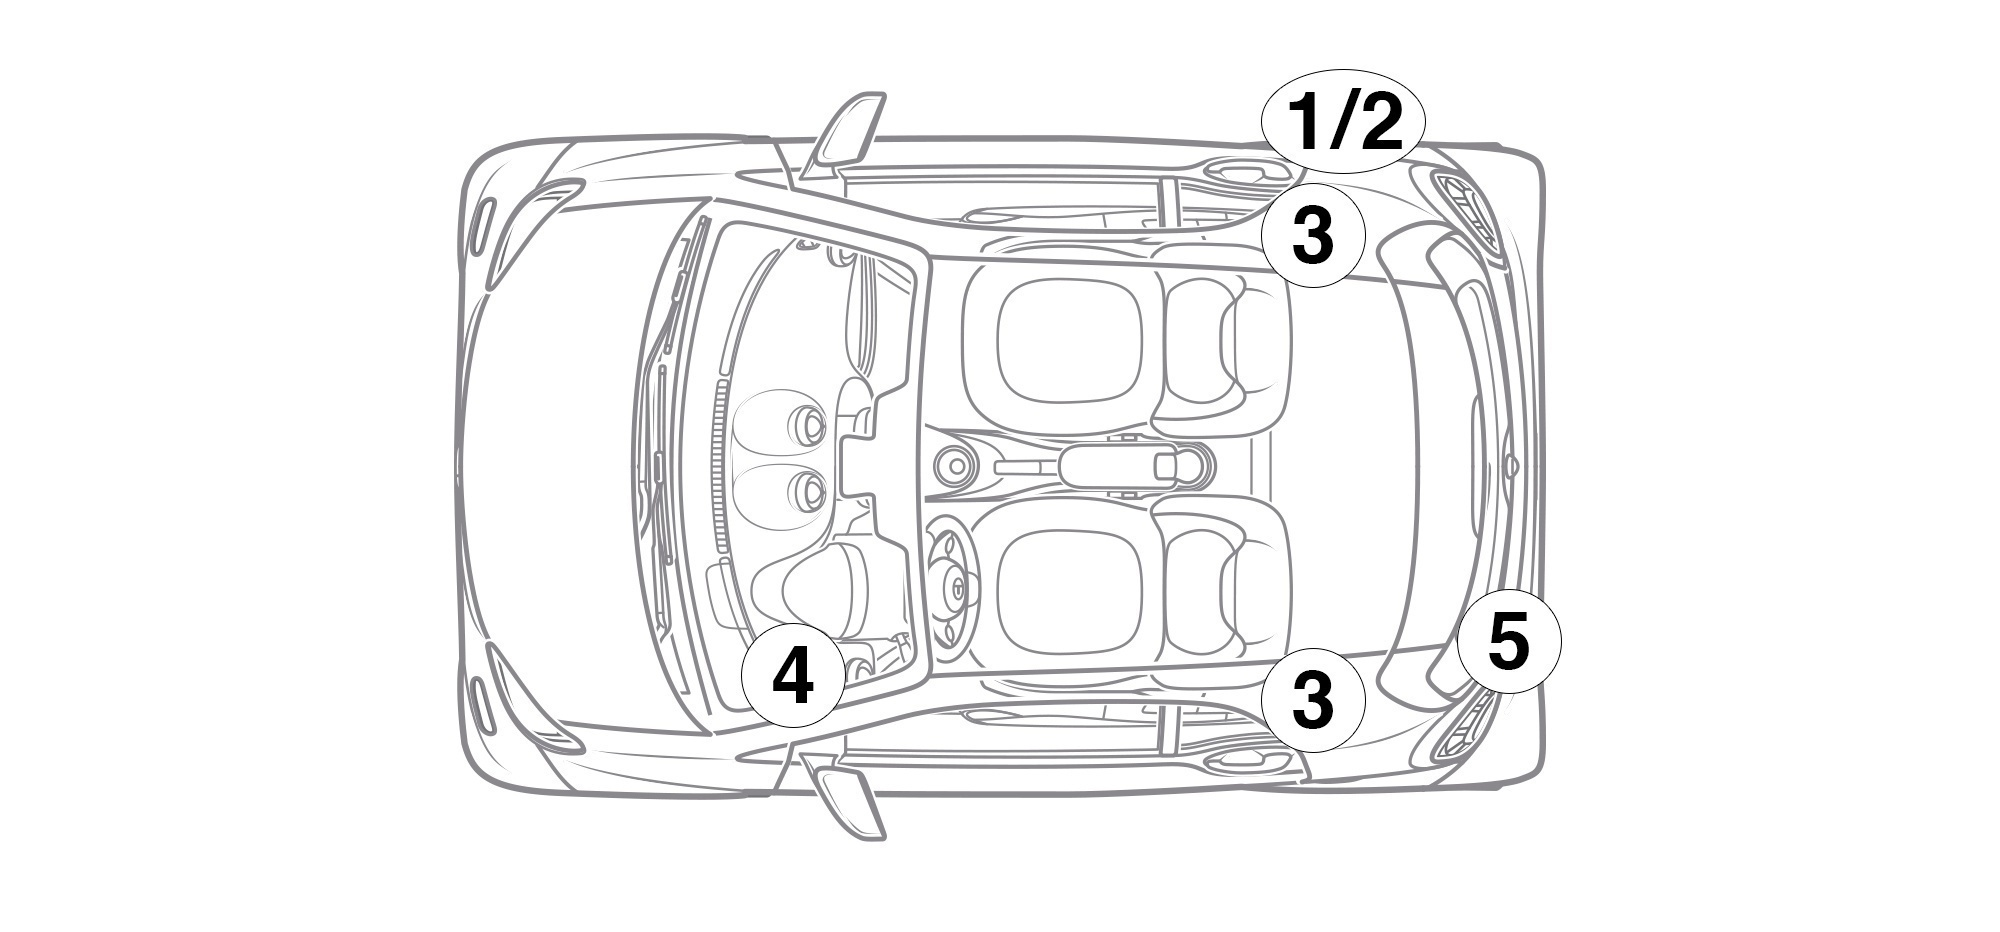 321303754643620959 in addition Engine Diagram in addition 478014947930843958 also 420312577704802664 moreover Sonnenschutz Toyota Yaris 5 Tuerer BJ Ab 2013 4 Teilig. on smart fortwo media